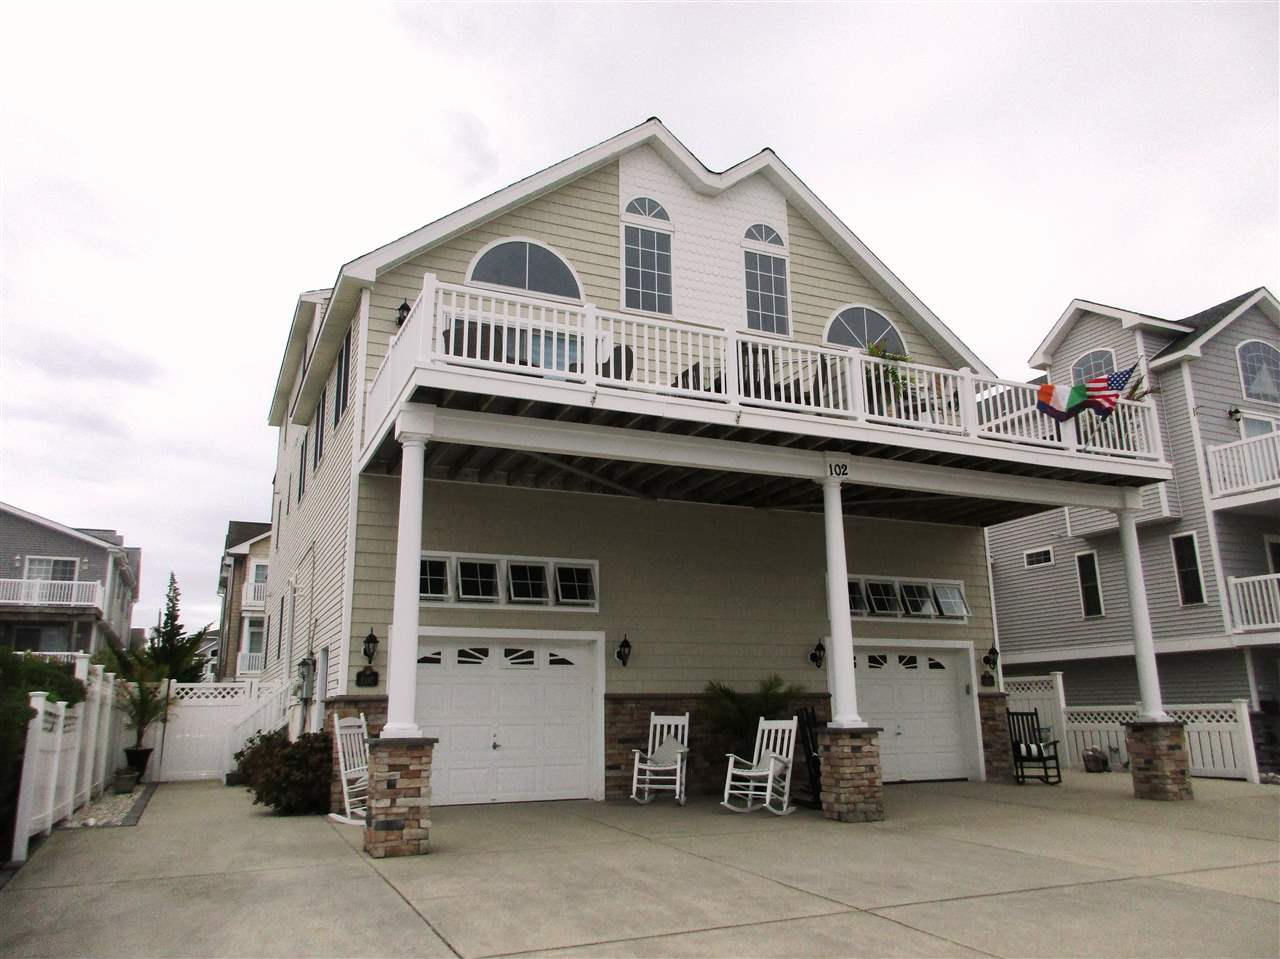 102, East Unit 60th Street, Sea Isle City